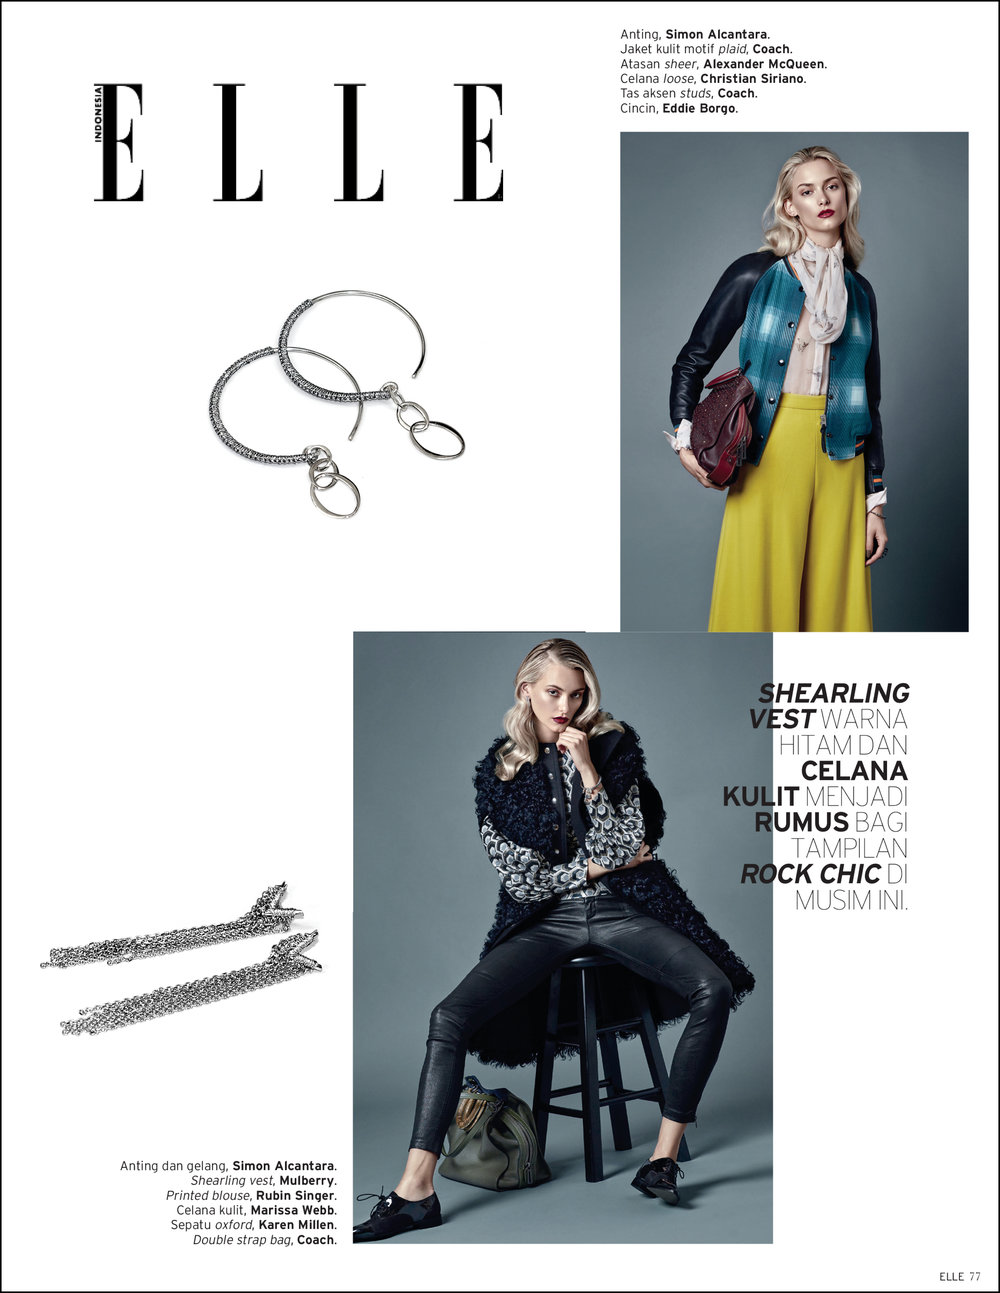 ELLE INDONESIA SEPTEMBER 2016, SIMON ALCANTARA JEWELRY, STYLED BY OSCAR MONTES DE OCA.jpg